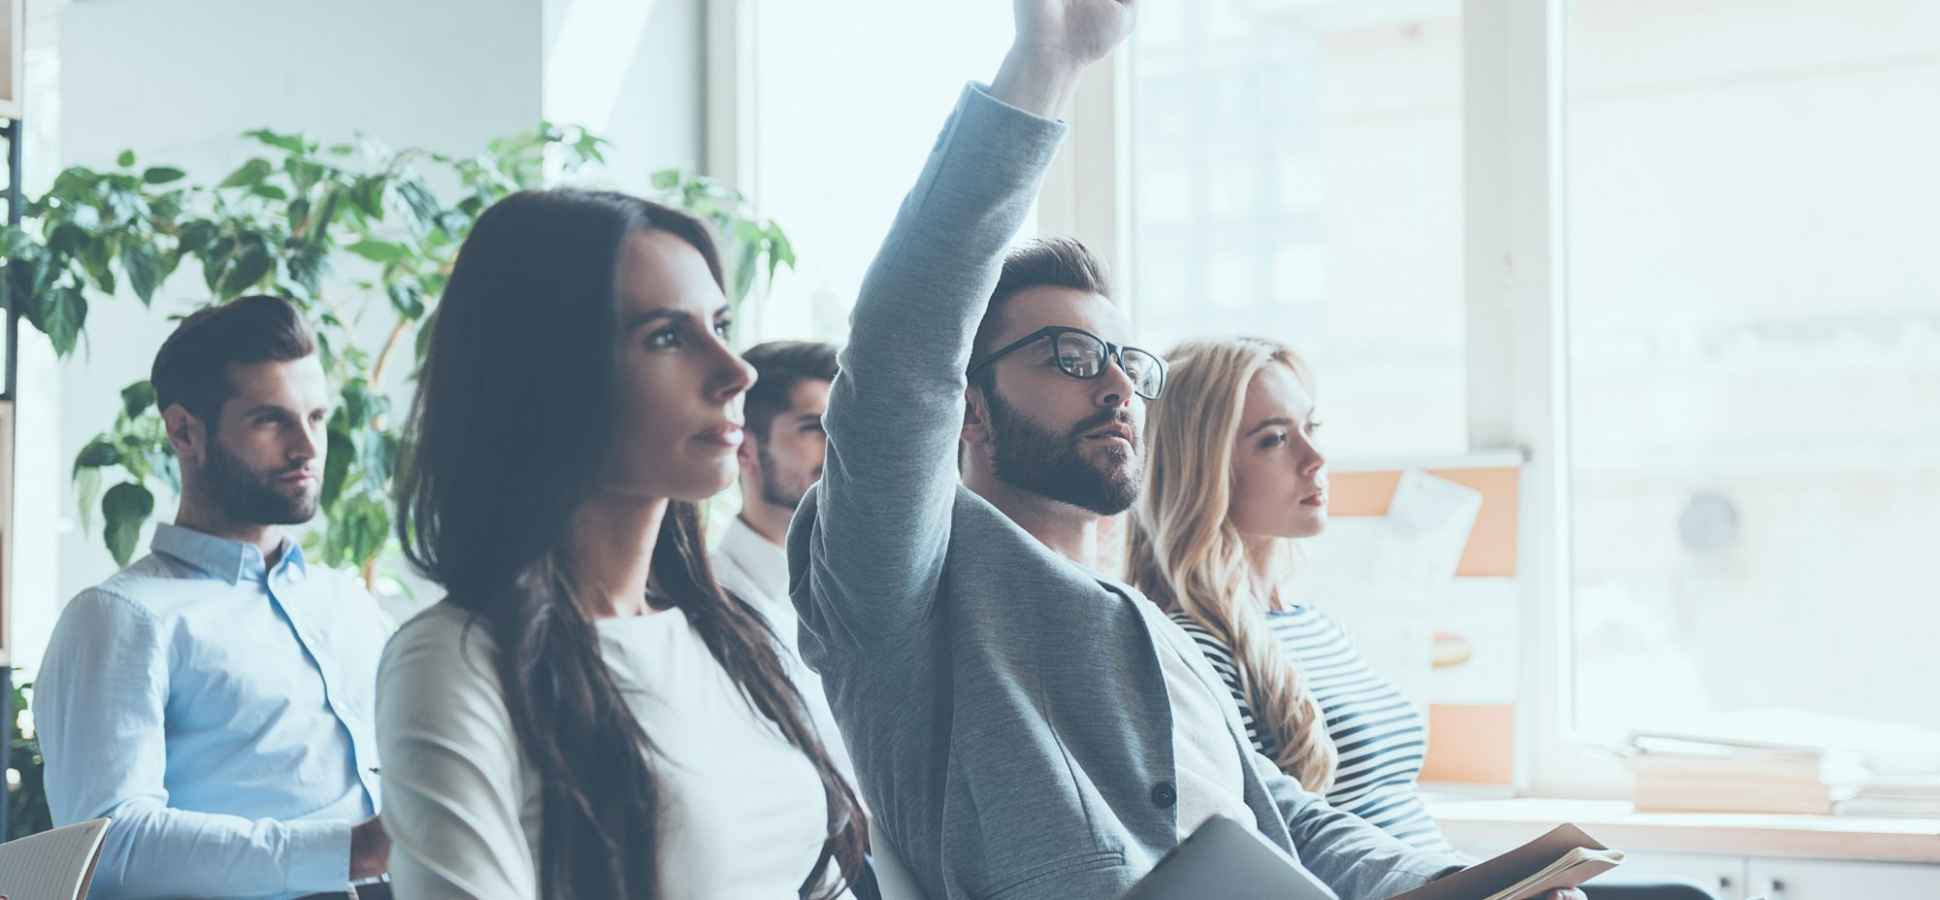 How to Make Leadership and Professional Development Programs More Effective